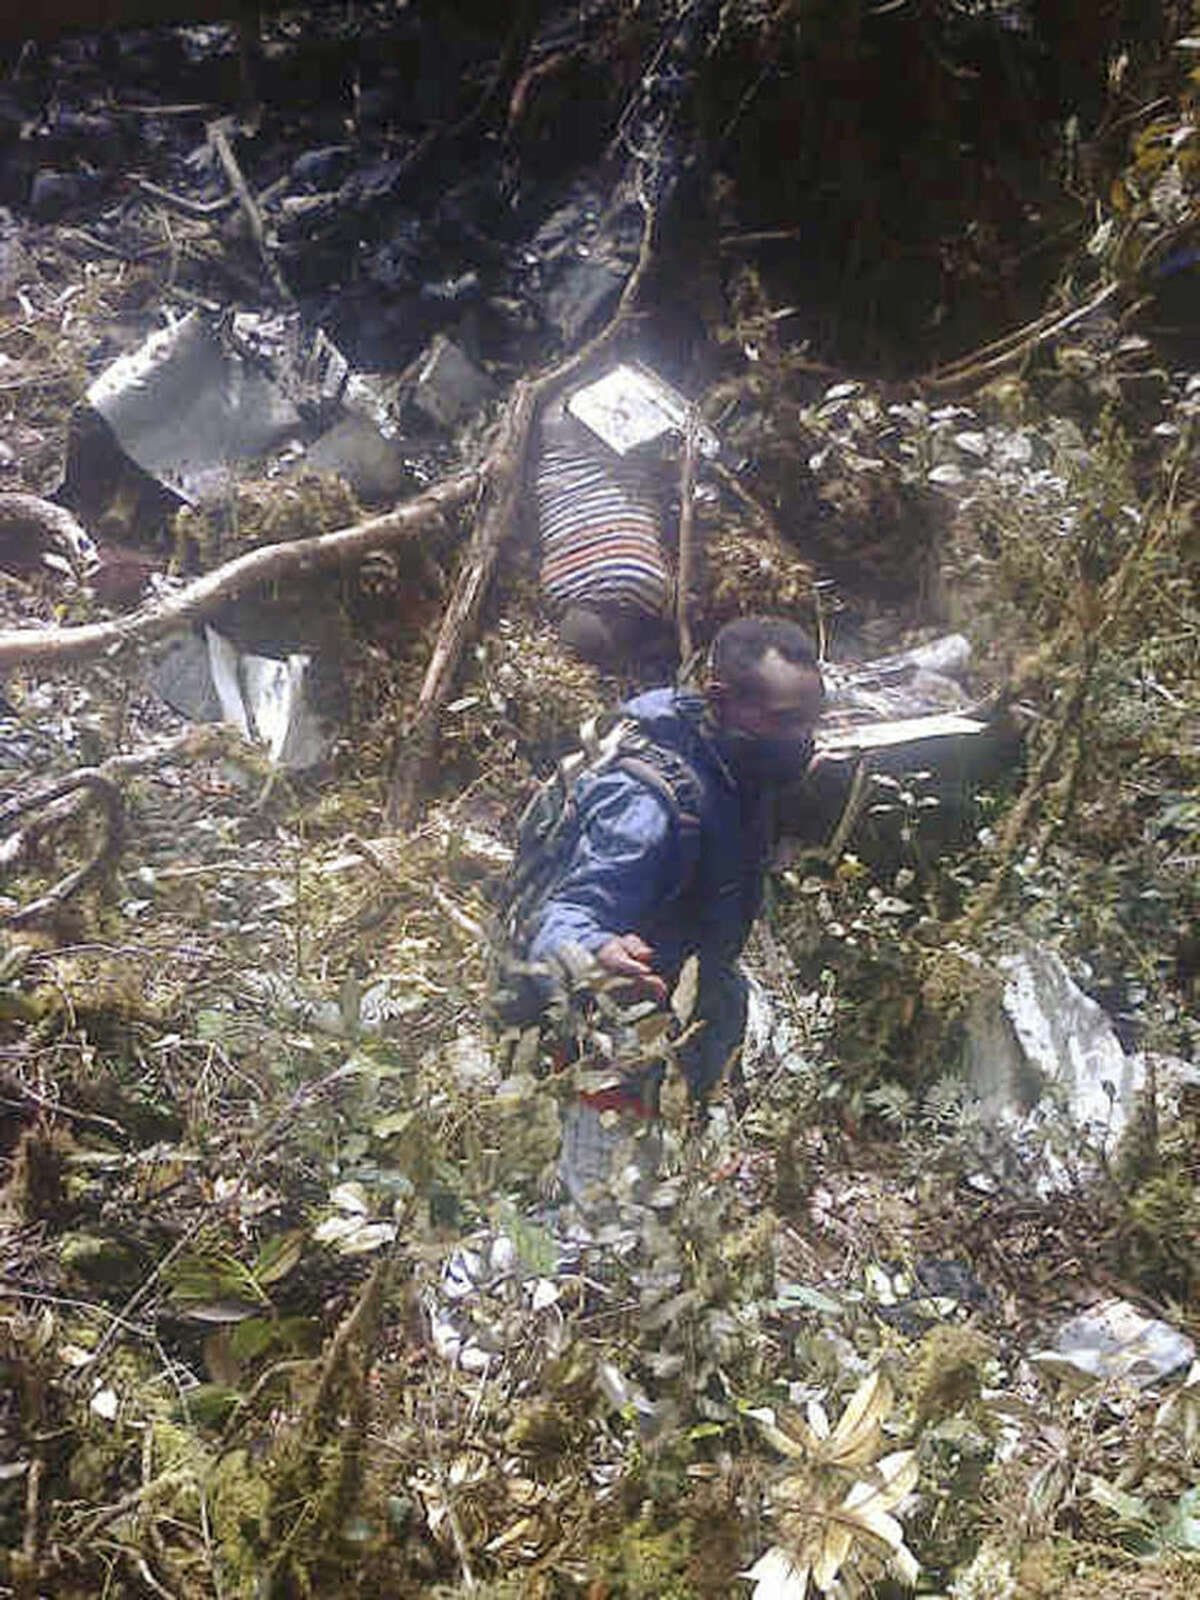 Plane wreckage is strewn across dense terrain in Pegunungan Bintang, Papua province, Indonesia, Tuesday, Aug. 18, 2015. The Trigana Air Service plane that went missing two days ago was destroyed when it slammed into a mountain, killing all 54 people on board, the country's top rescue official said.(AP Photo)